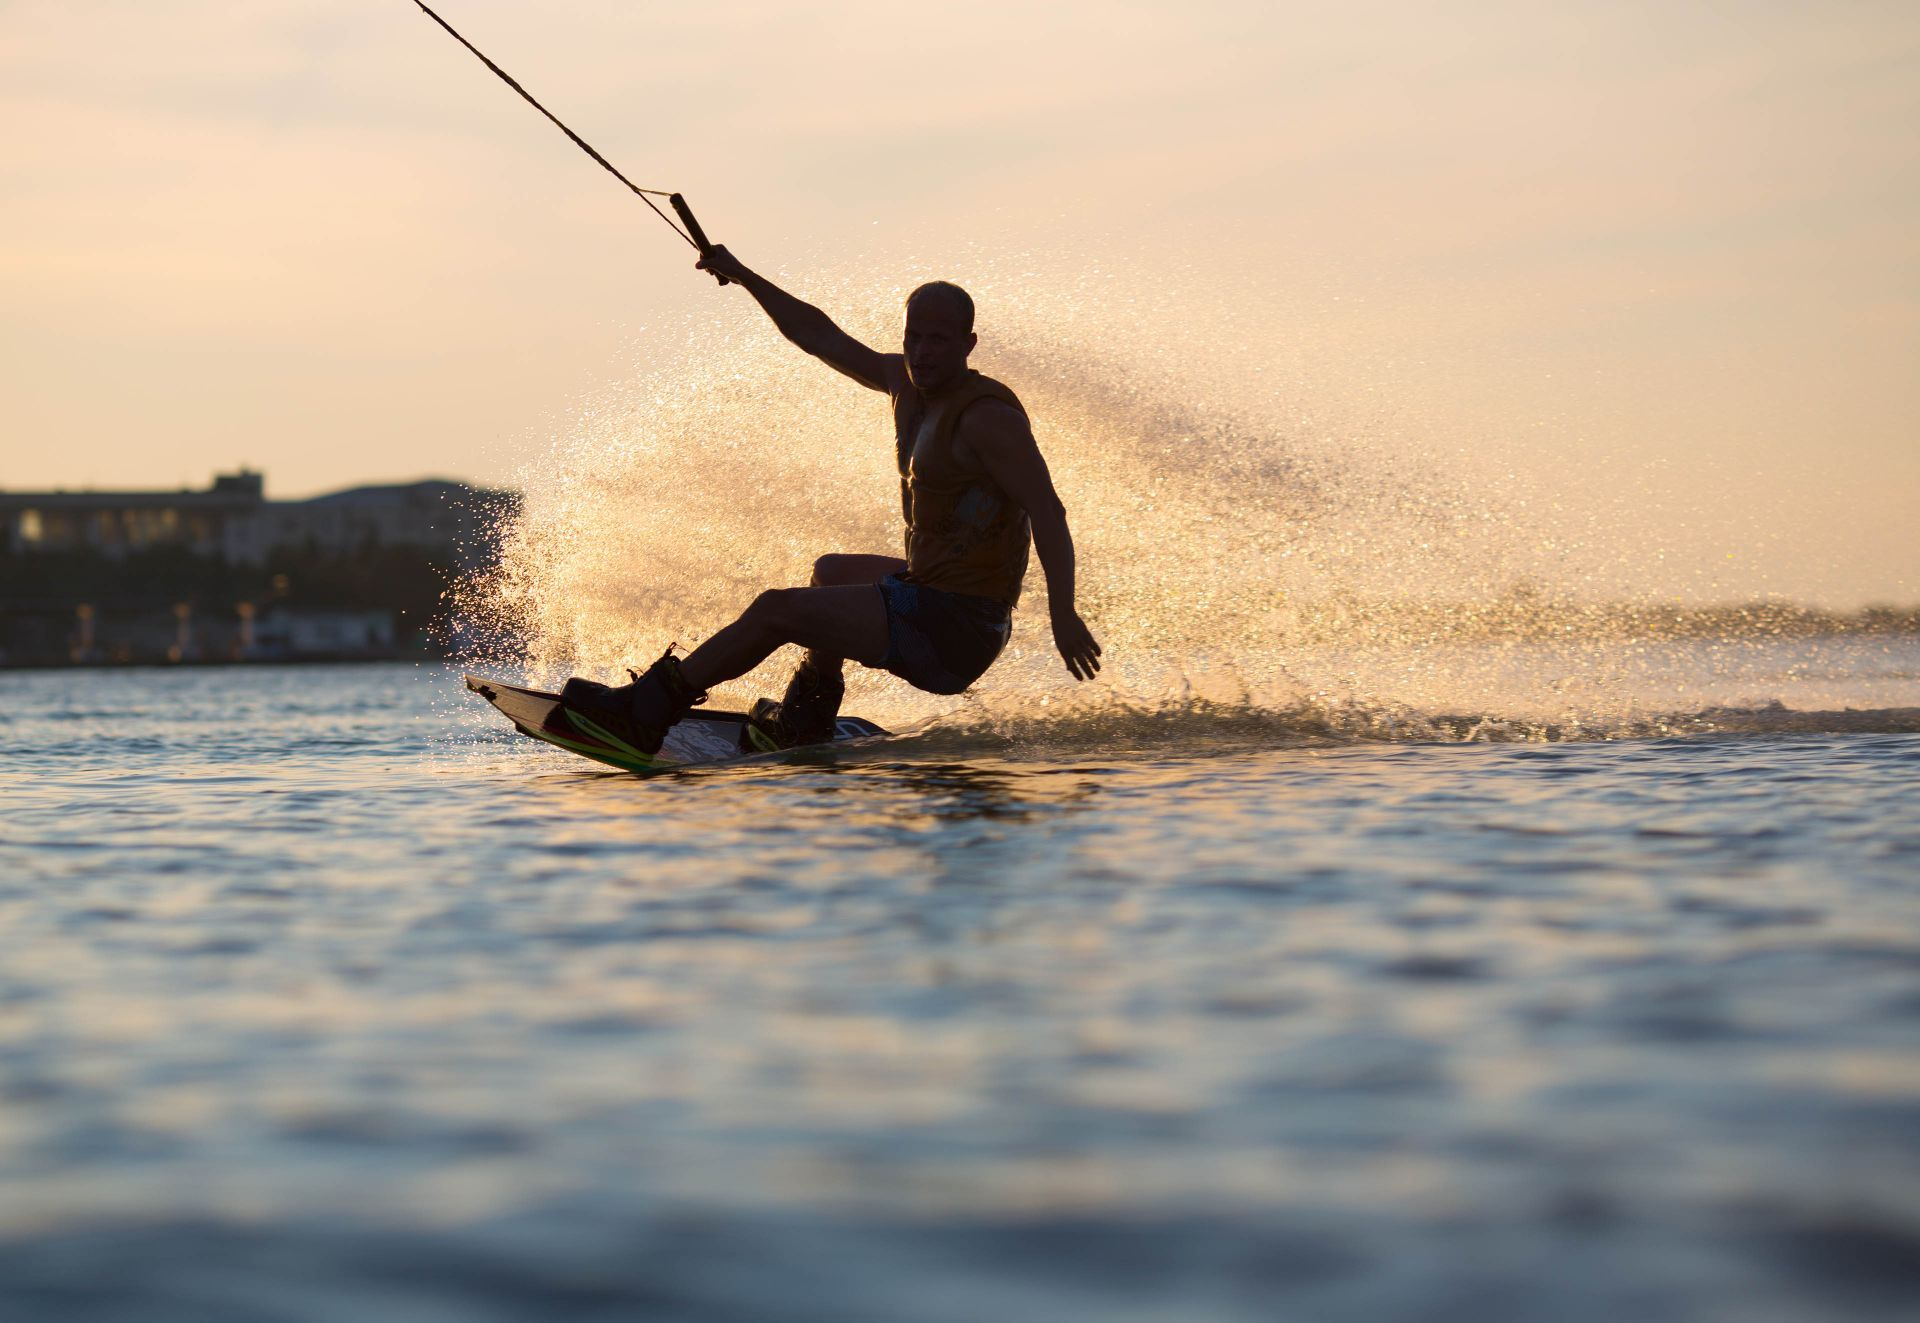 Greece sports: Wakeboarding